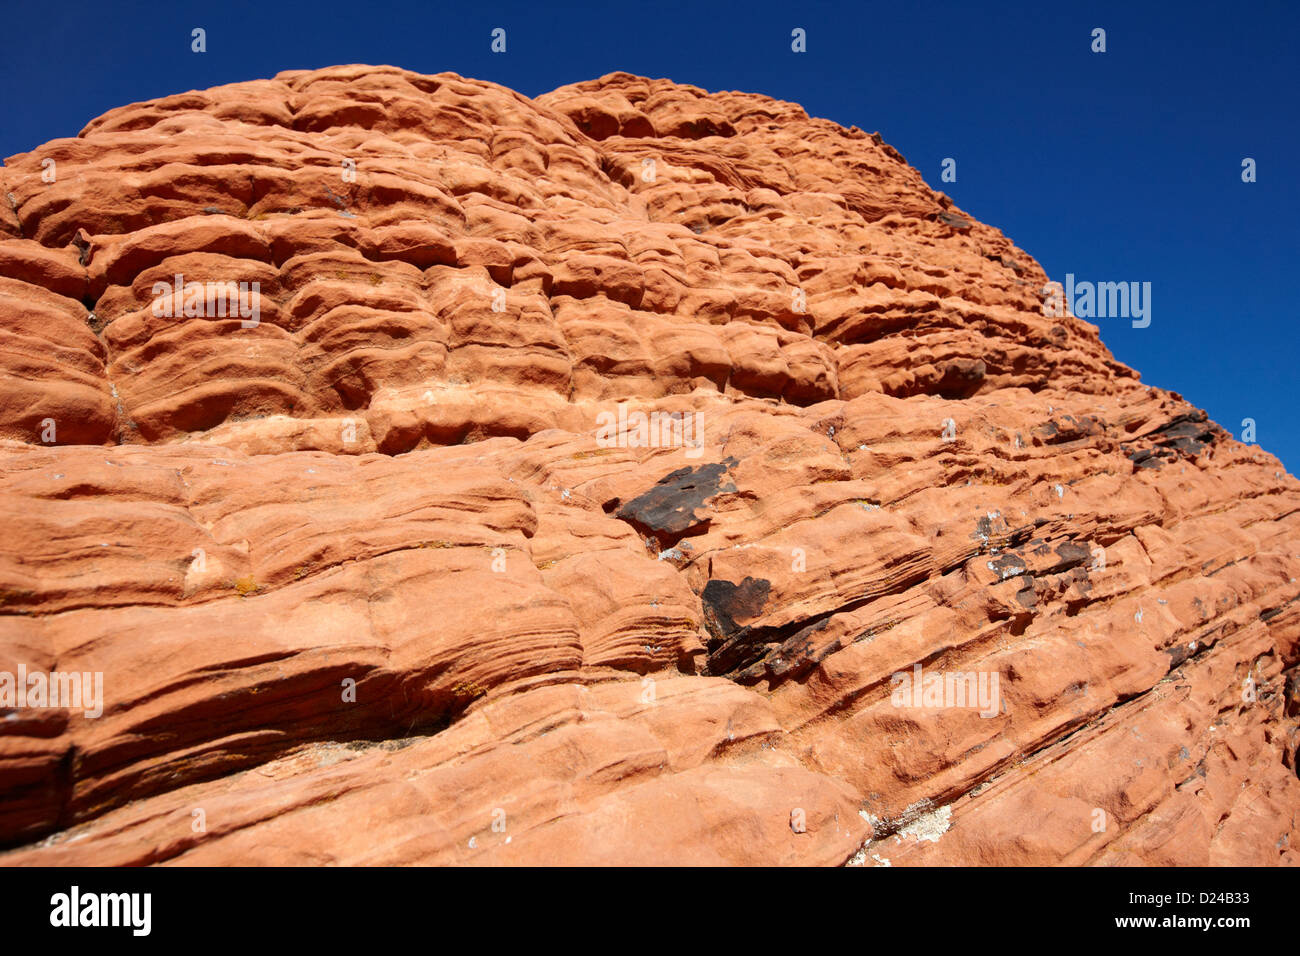 layers or beds on beehives sandstone formations in valley of fire state park nevada usa - Stock Image